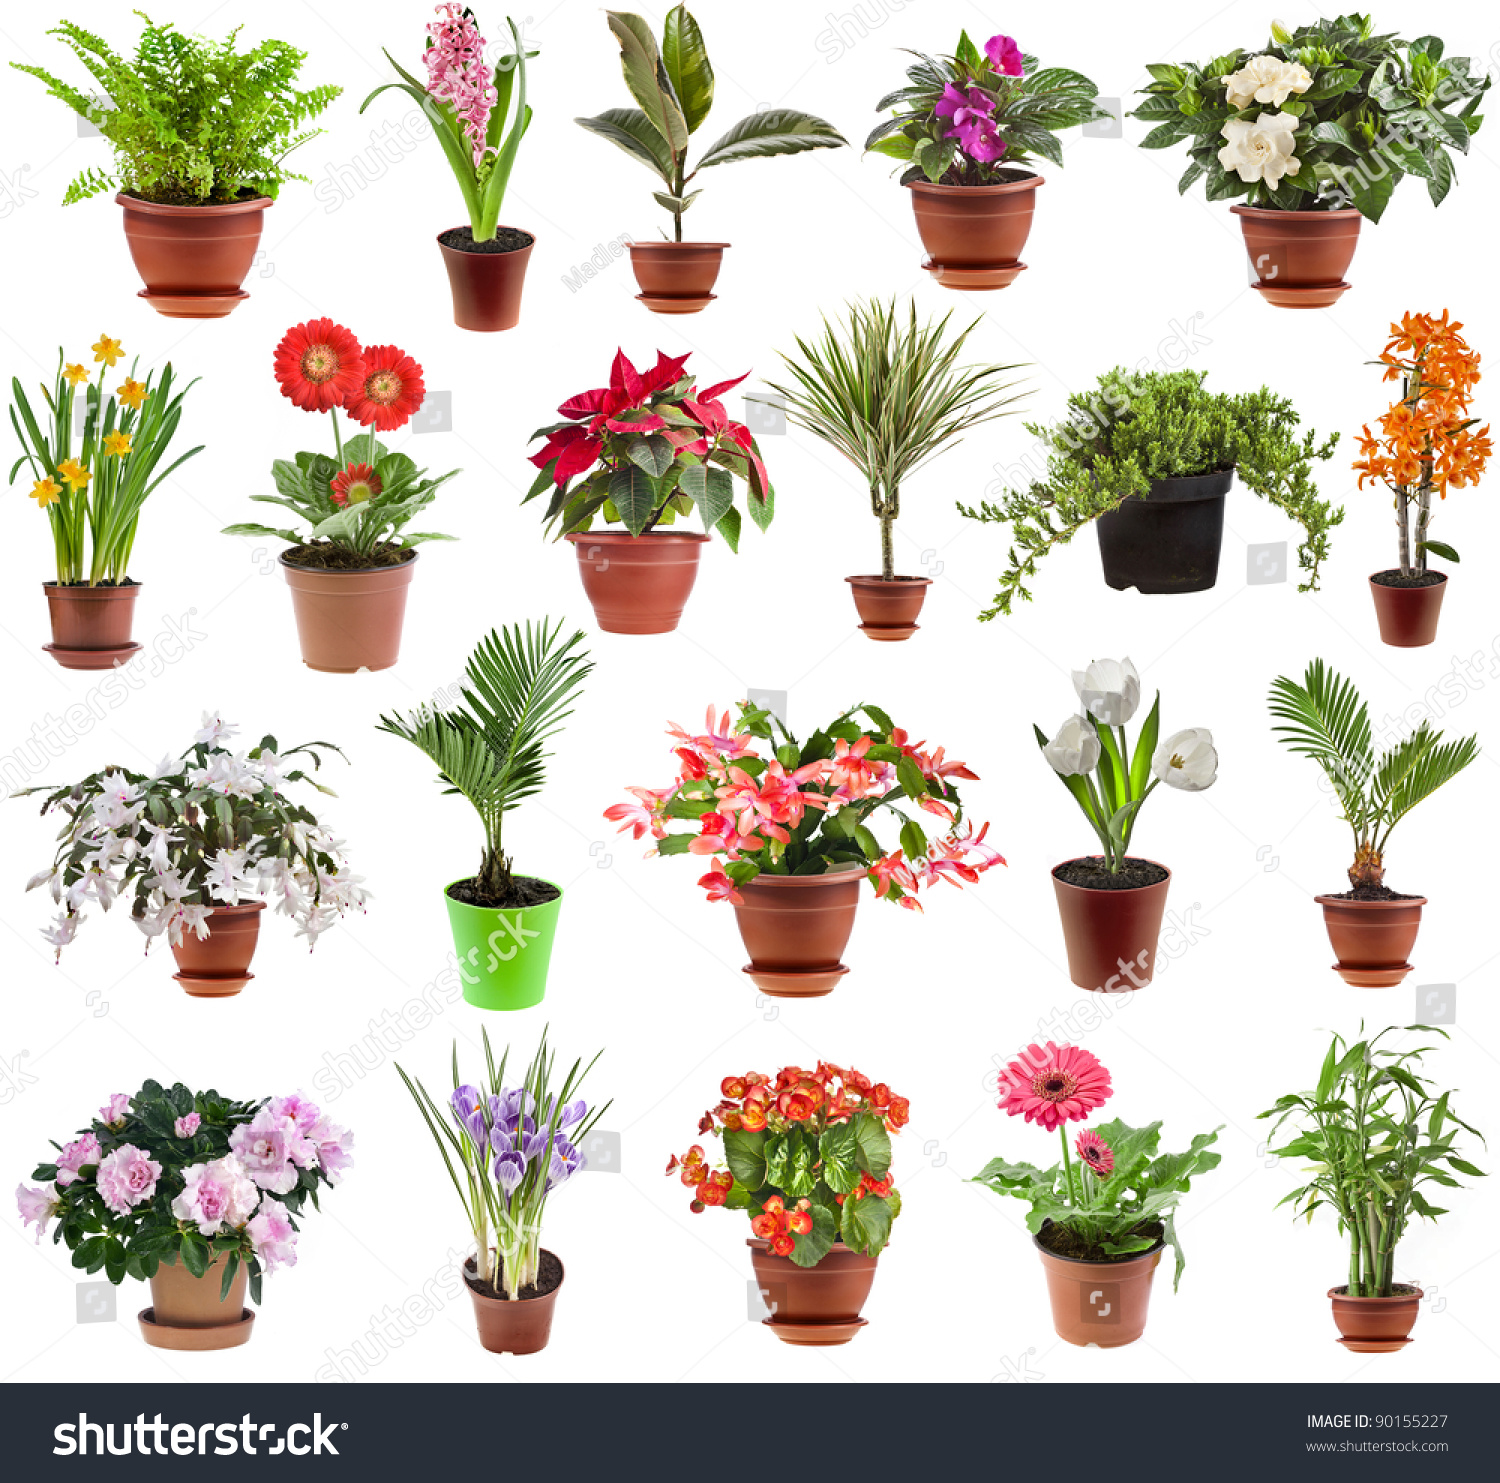 Pictures Of Flowering House Plants Collection Set Houseplants Flower Pot Isolated Stock Photo